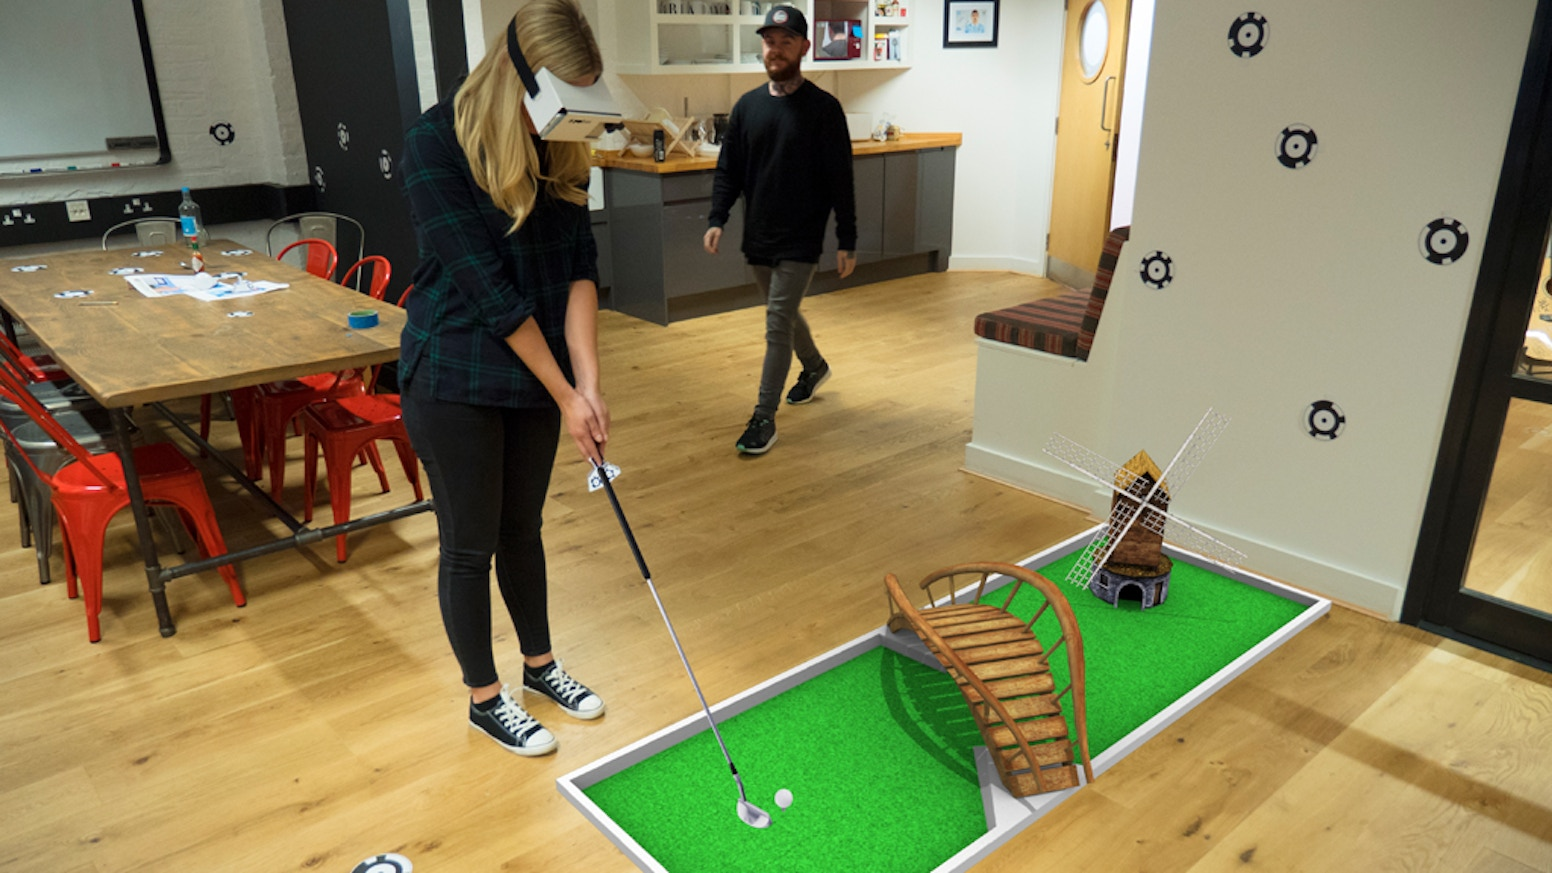 Interactive virtual content in the physical world: play mini-golf, visit Mars, or paint in 3D. Then create and share your own content. 2019 Update: ZapBox 2.0 is now available! See www.zappar.com/zapbox for all the details or click below to buy now!